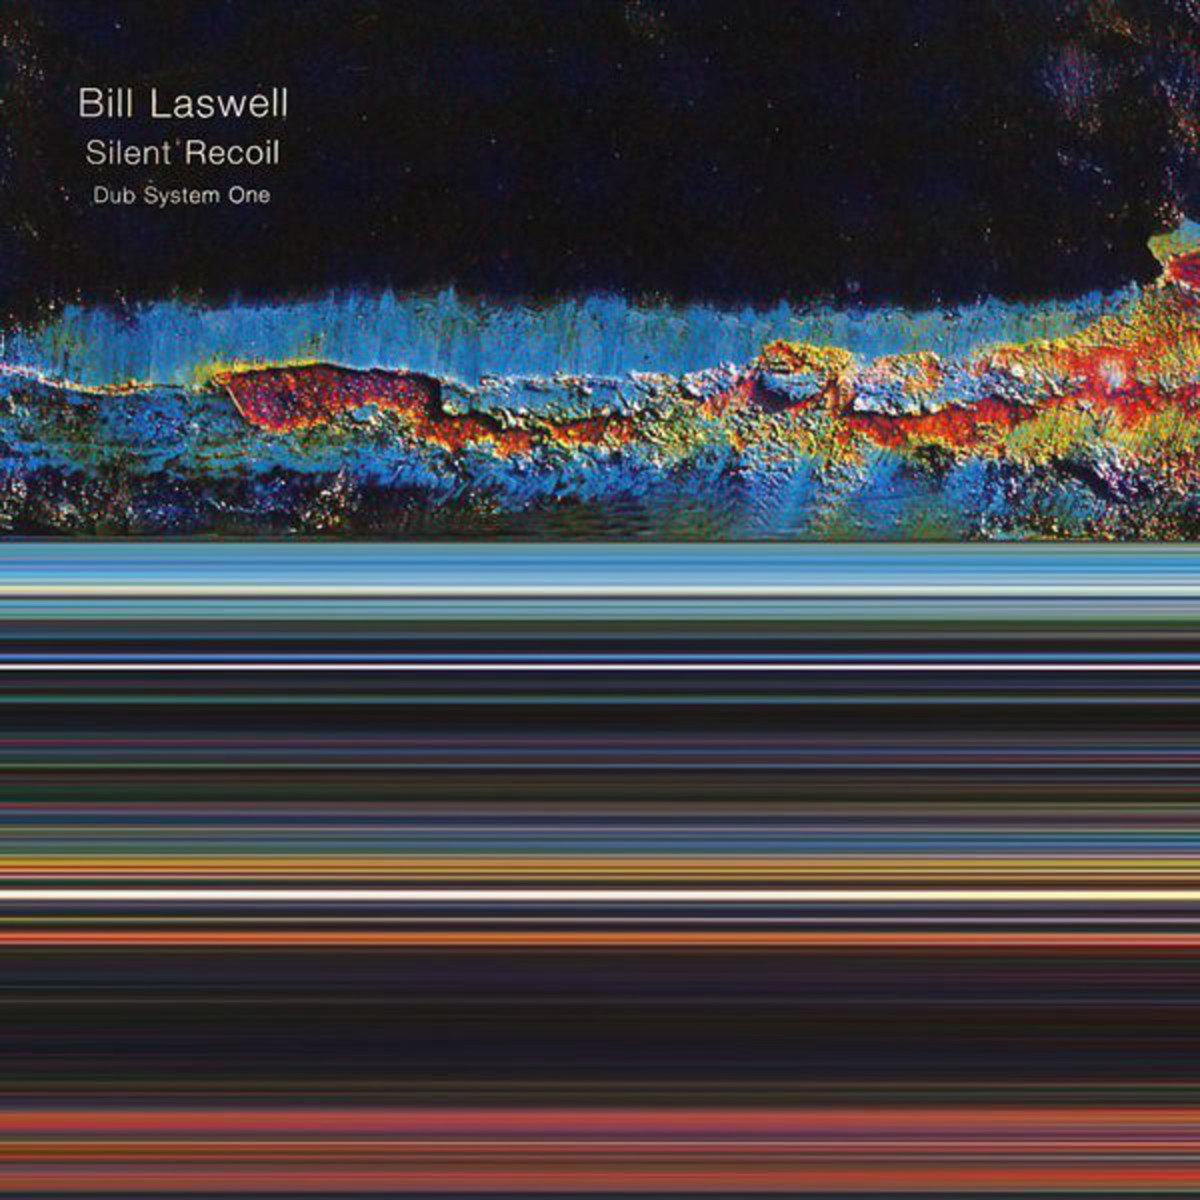 Silent Recoil Dub System One Bill Laswell